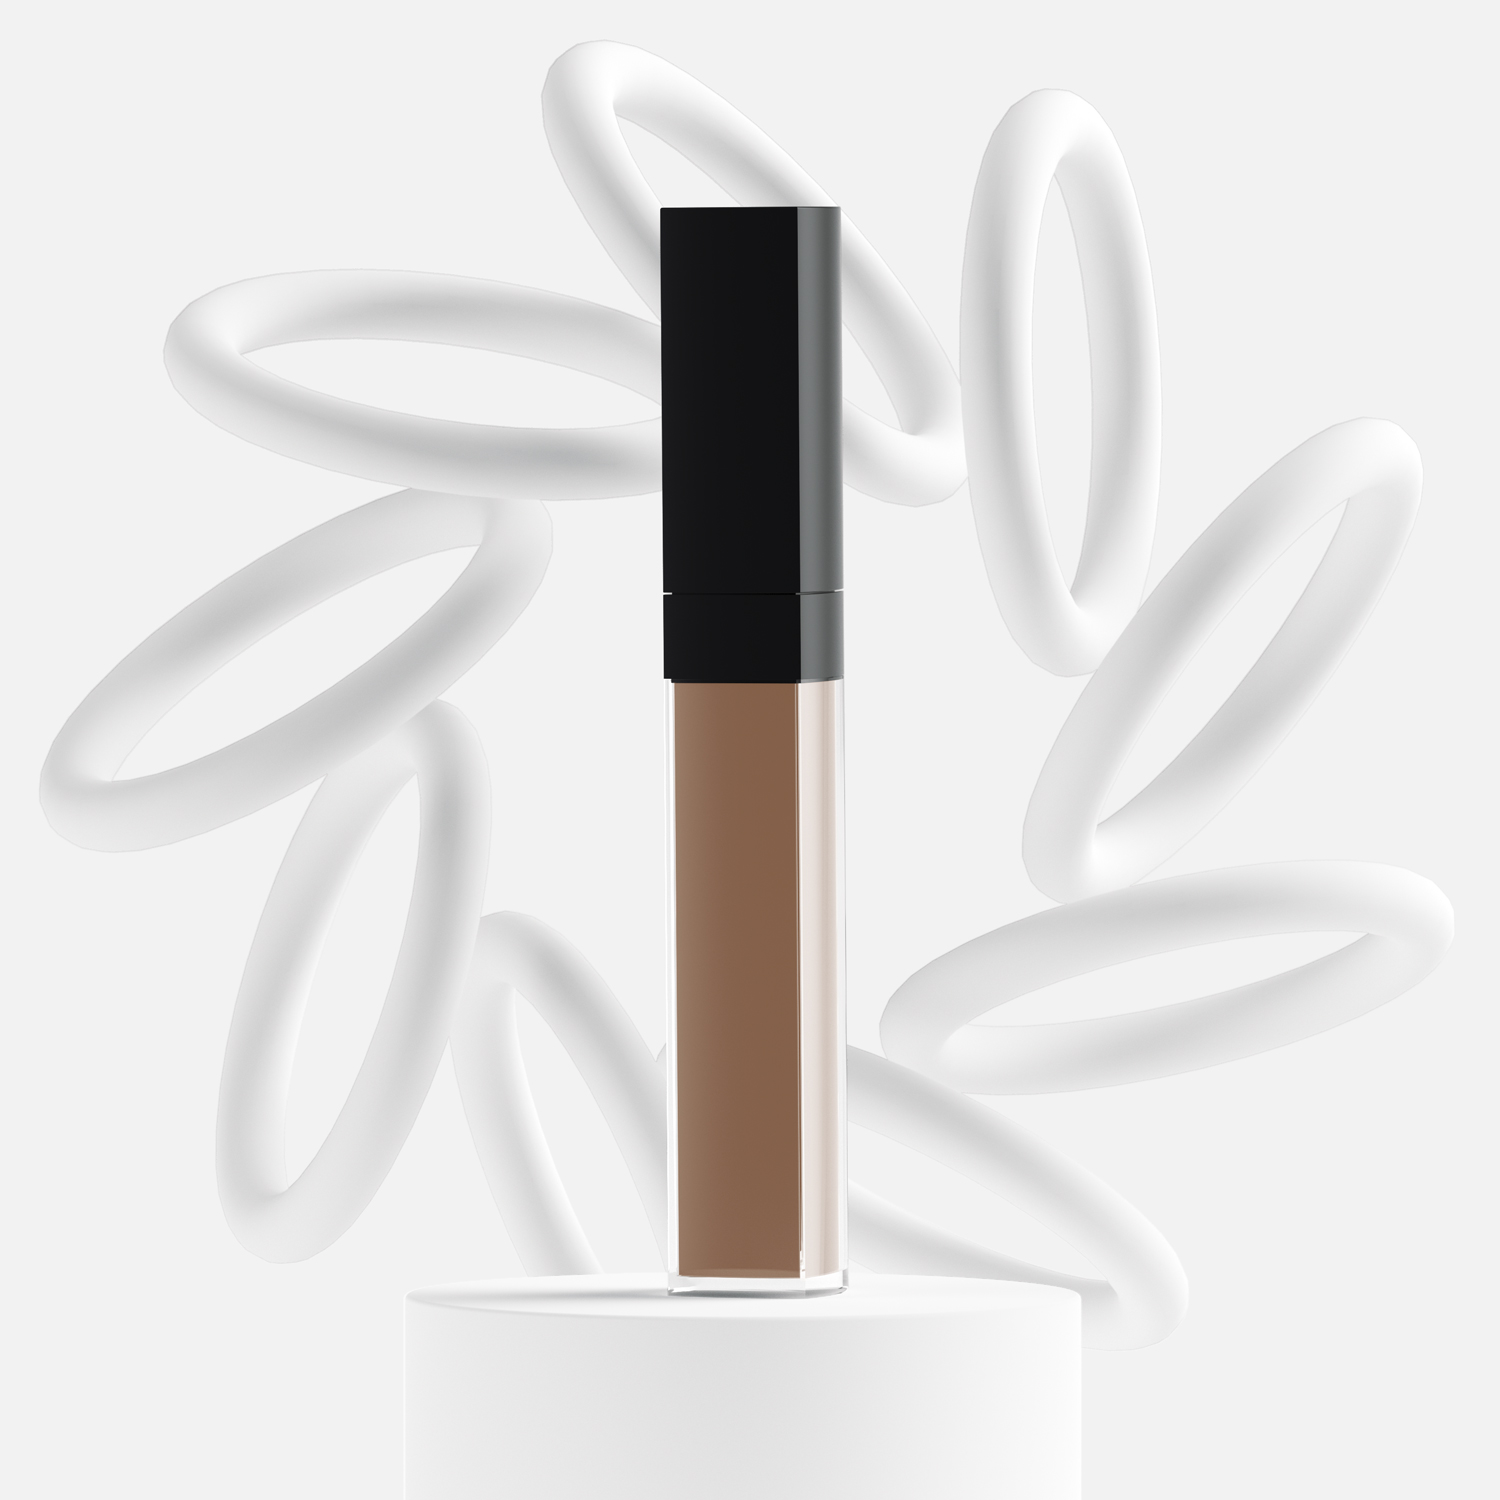 Full coverage concealers now available!